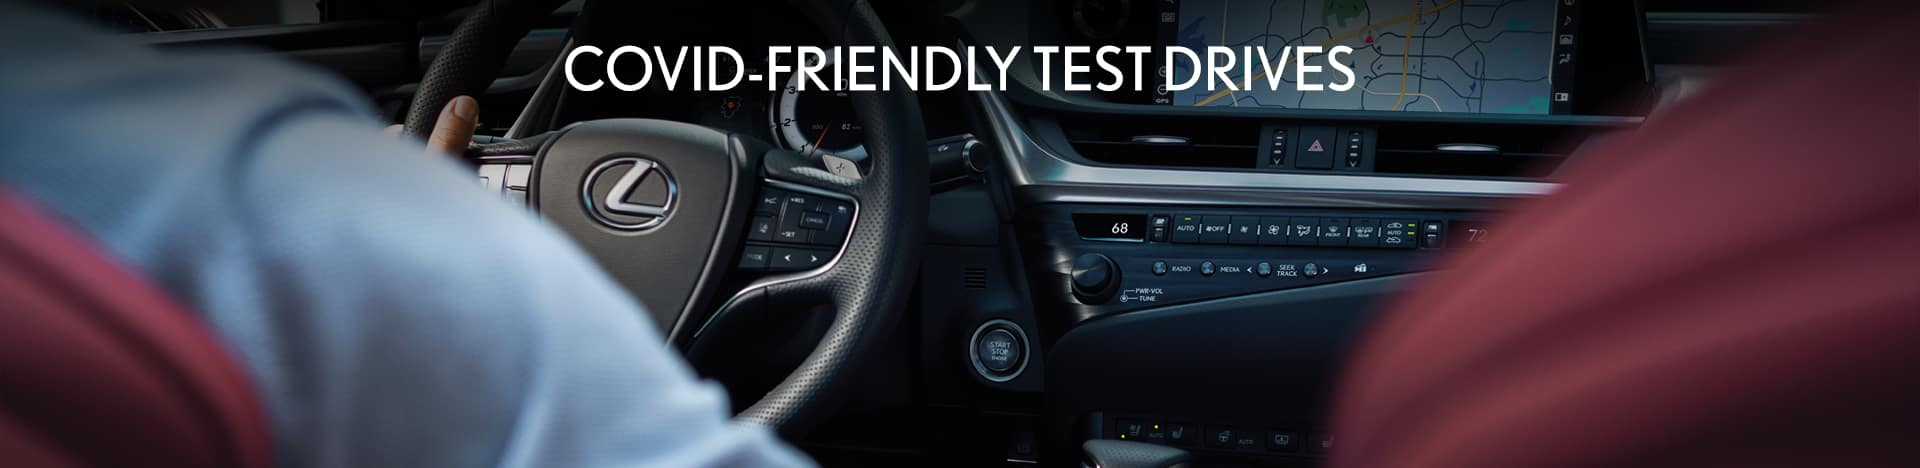 take a COVID-friendly test drive with us at Thompson Lexus Willow Grove